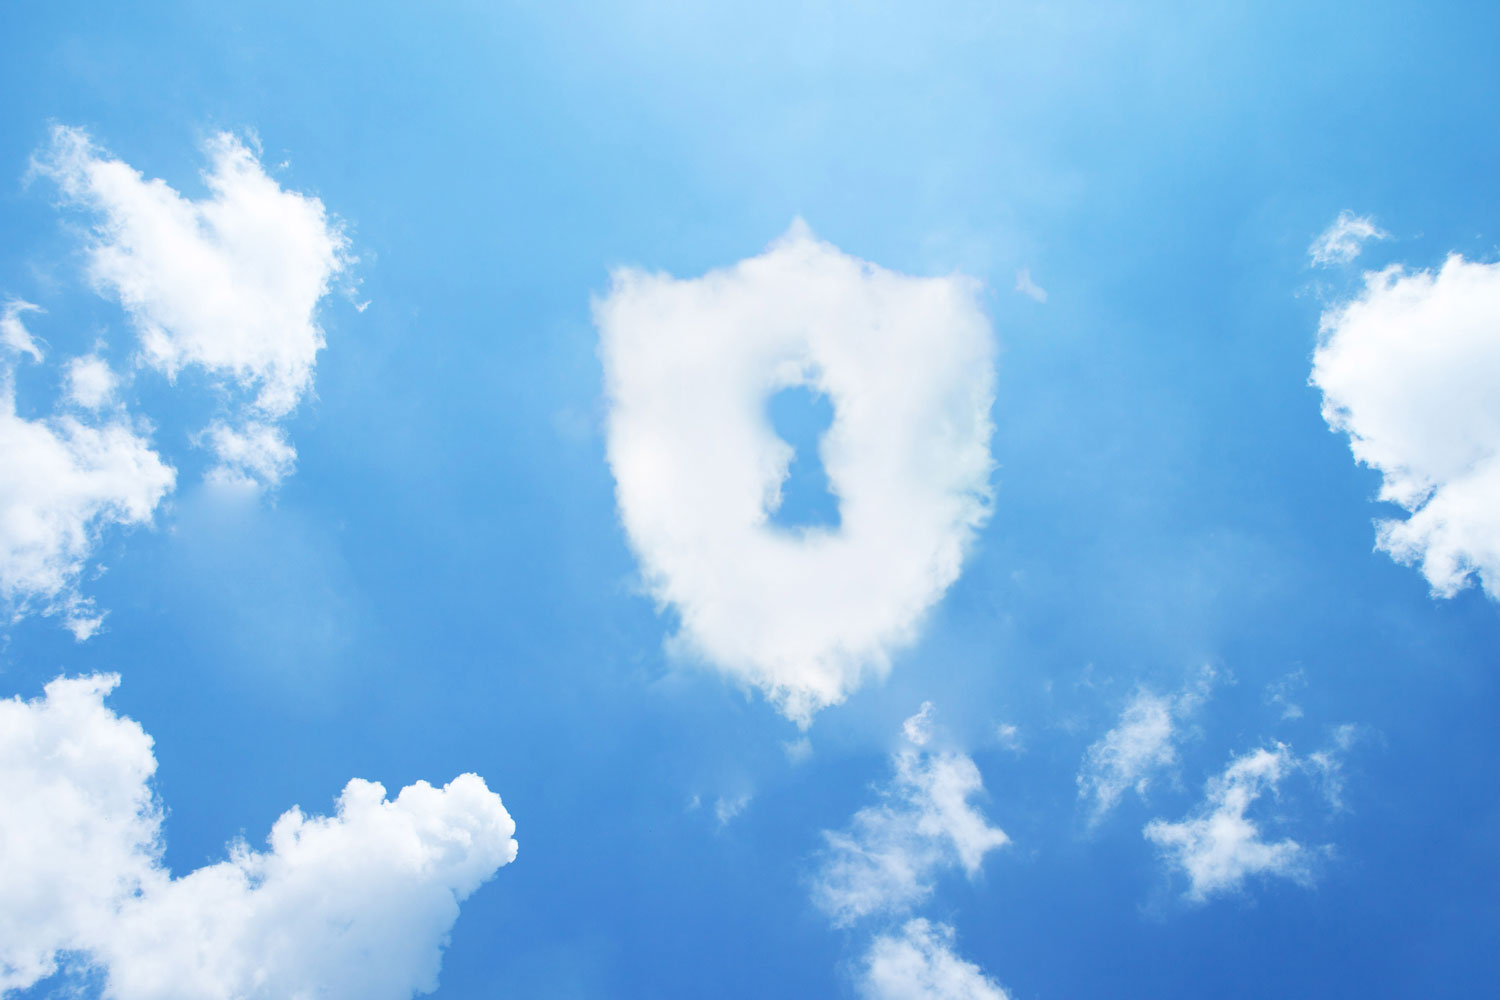 Review Your Strategy for Cloud Security